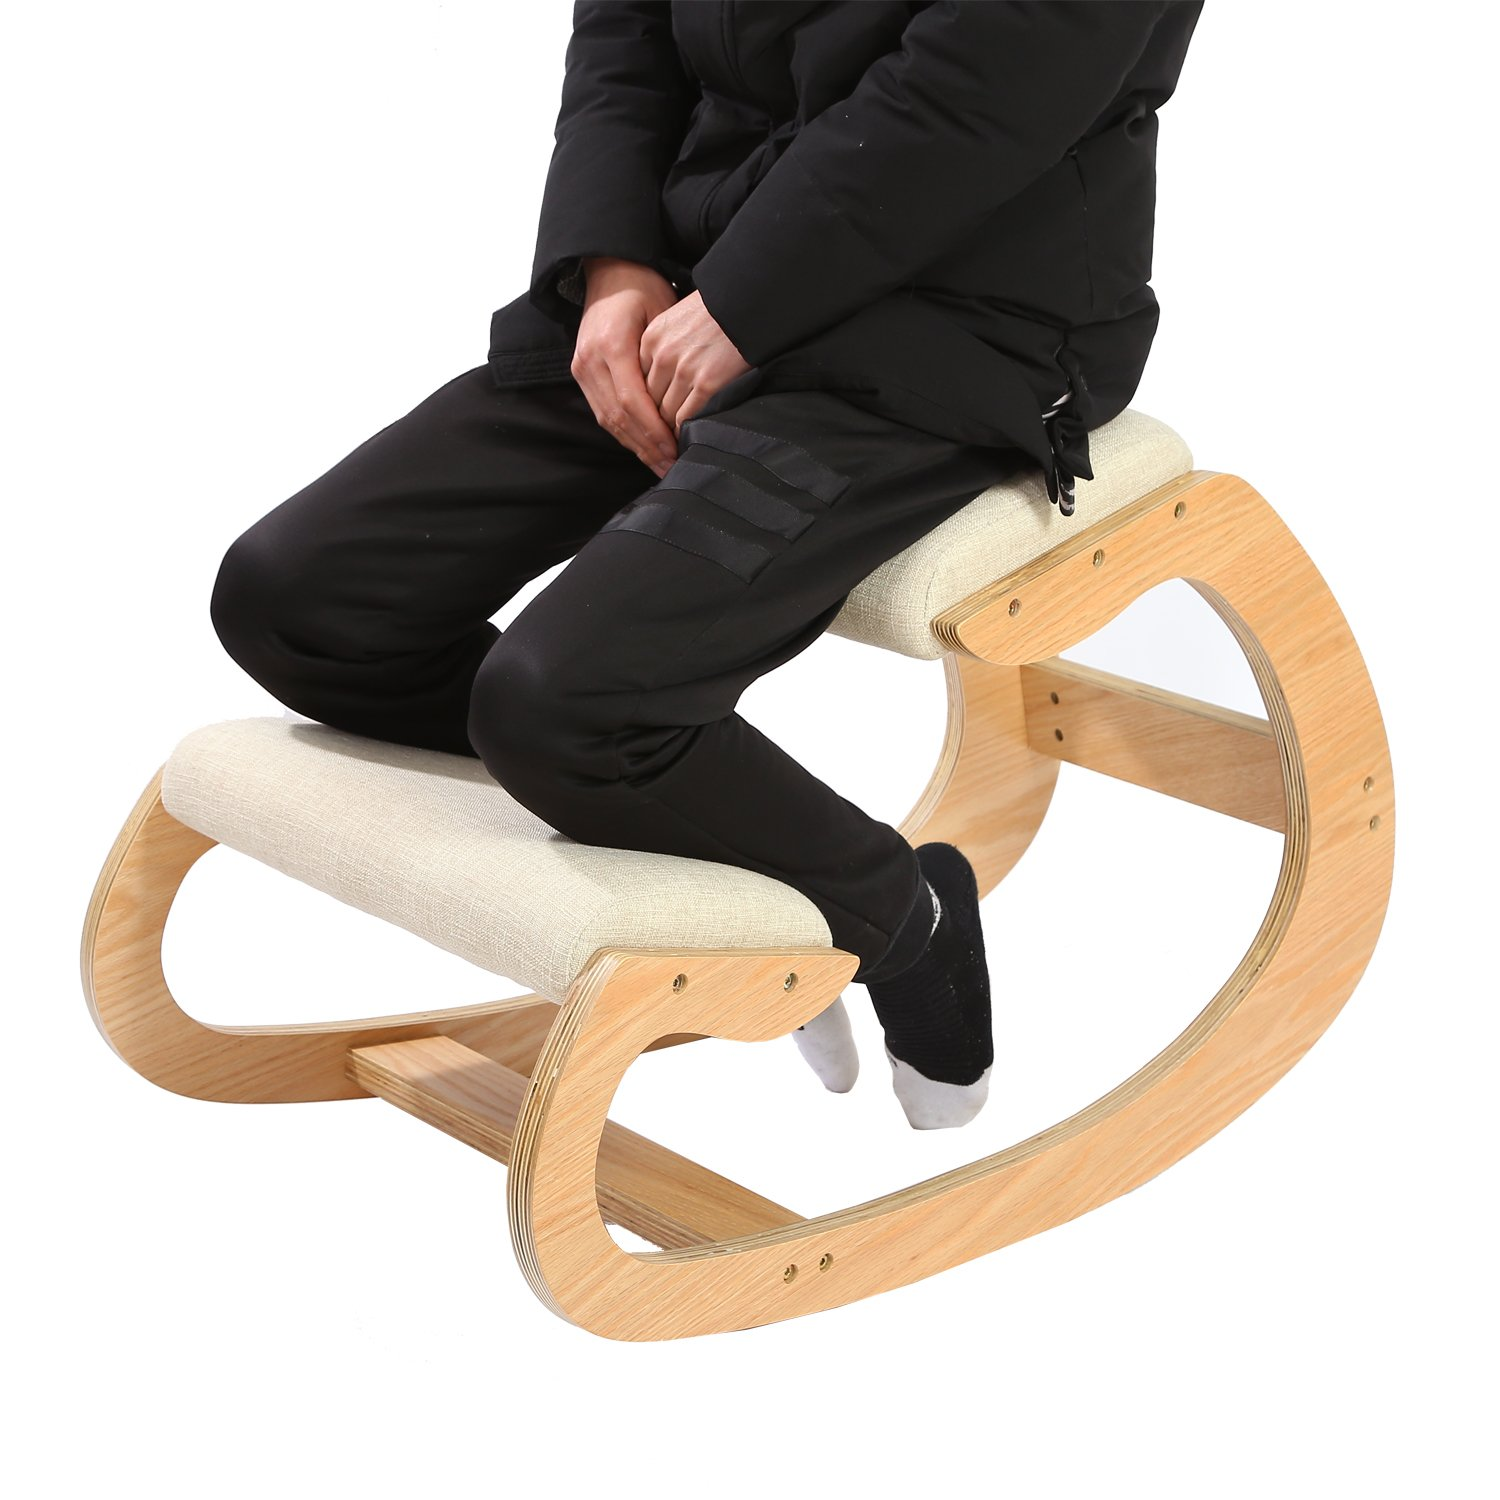 Adjustable Chairs : Online Shopping For Clothing, Shoes